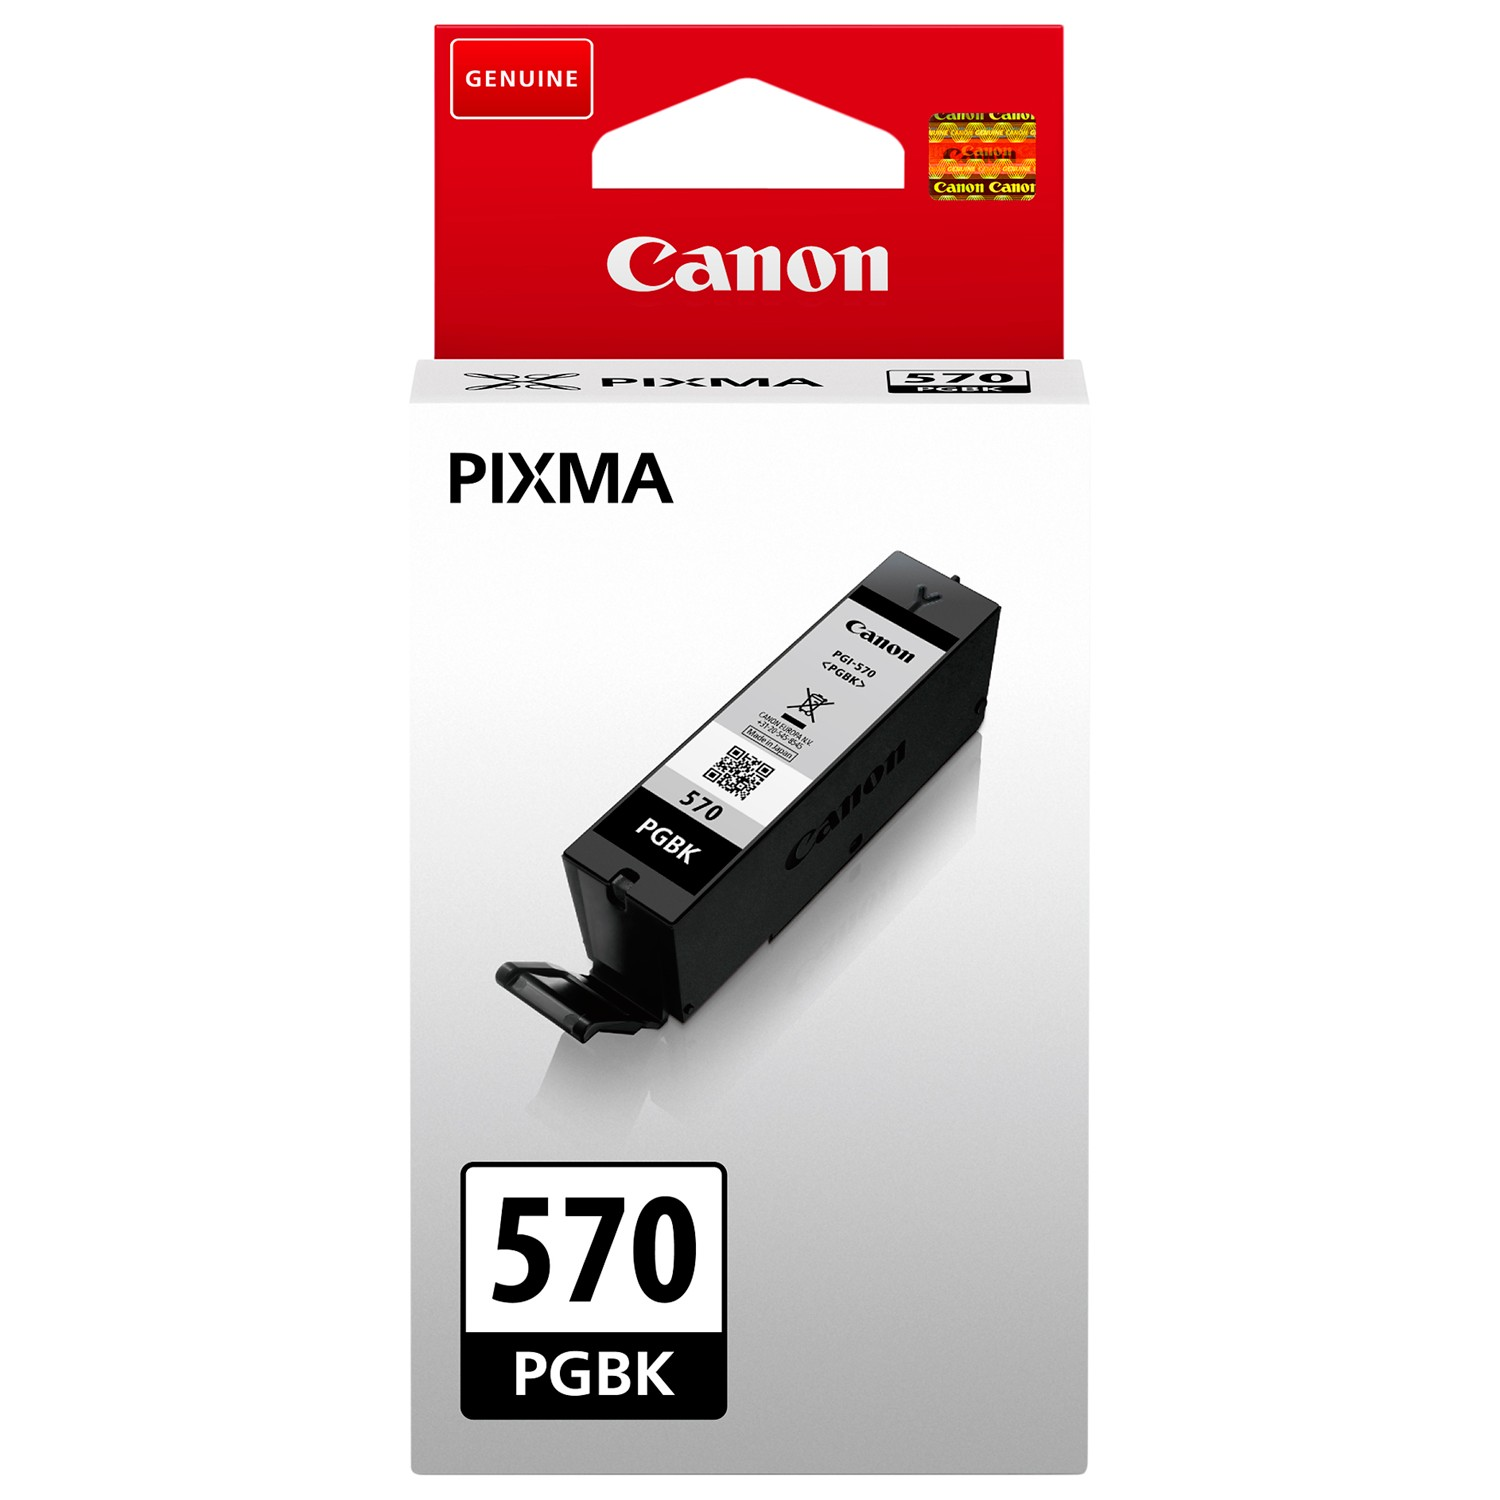 Canon PGI-570PGBK black pigment ink cartridge Original Canon